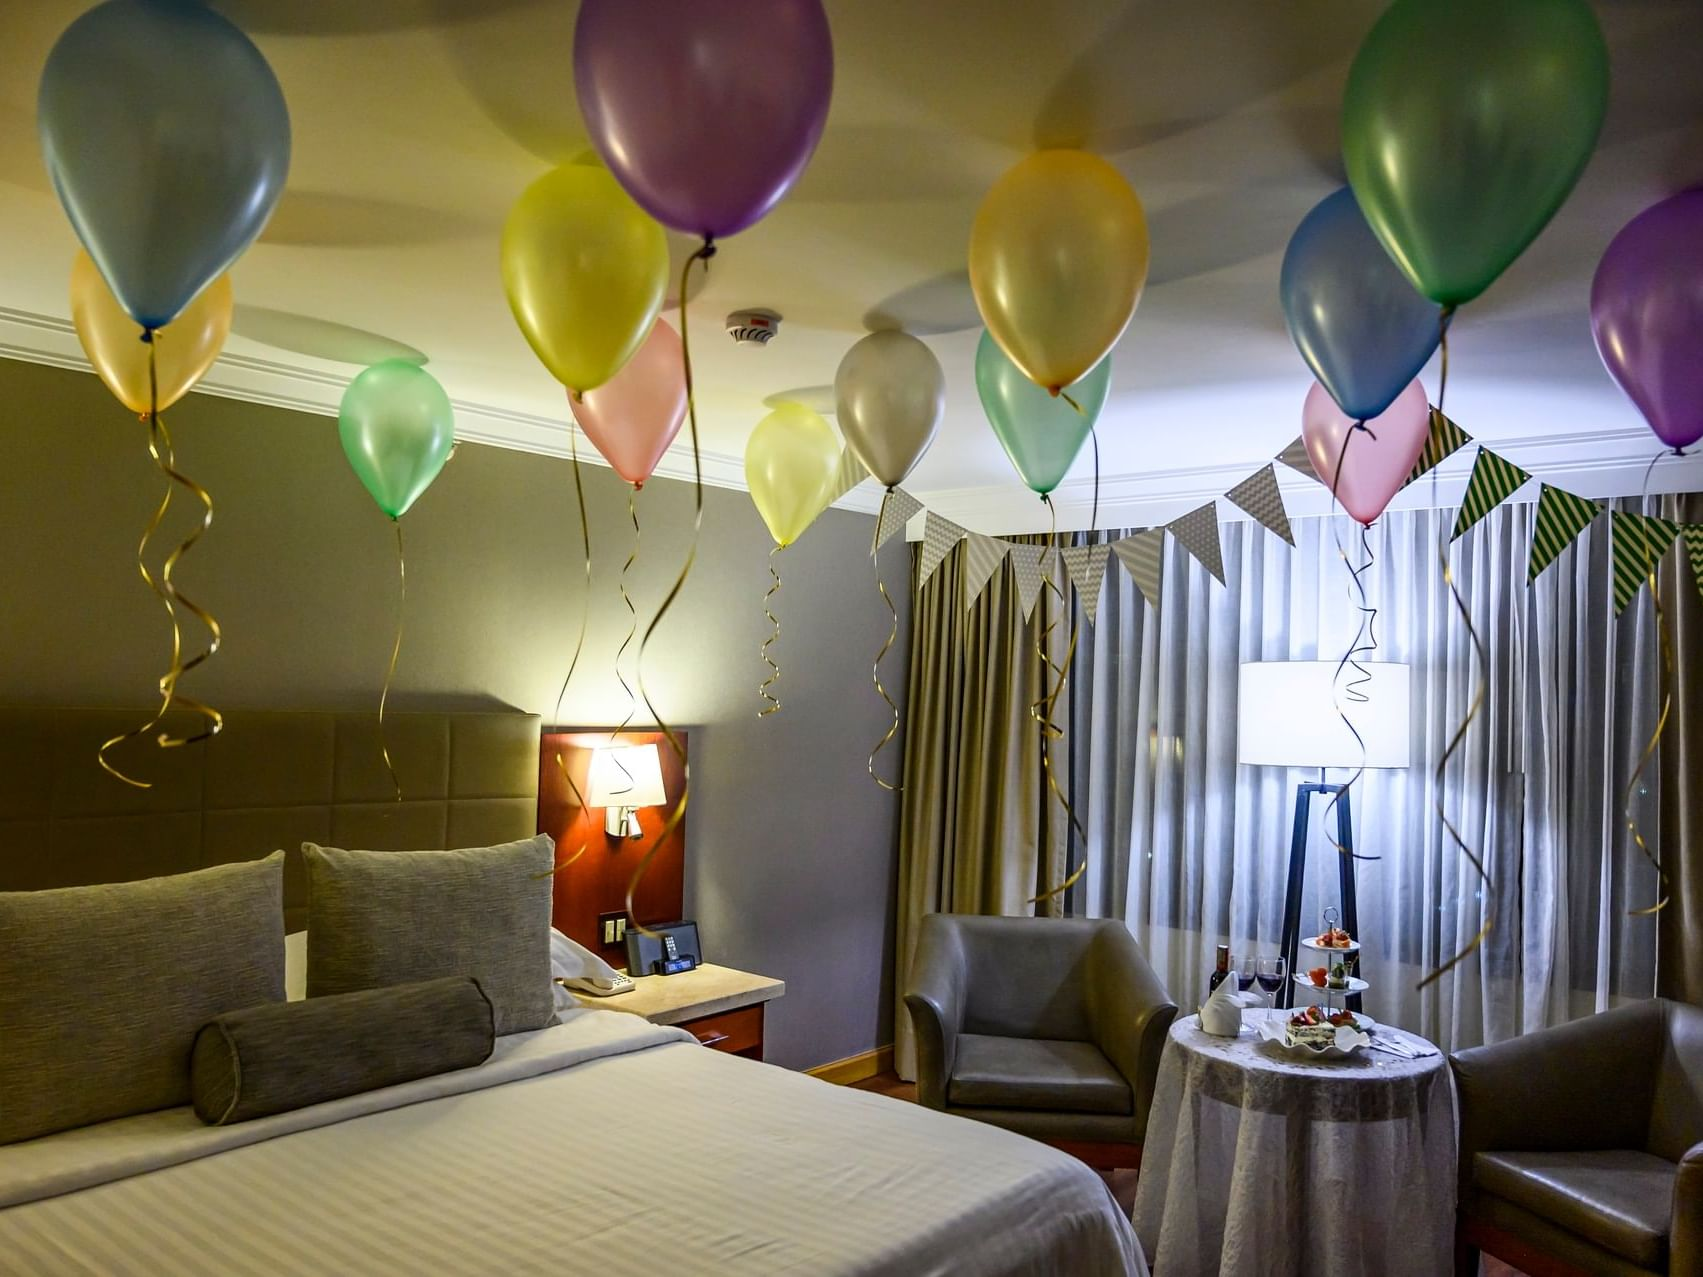 Guest room decorated for birthday at Bogotá Plaza Hotel